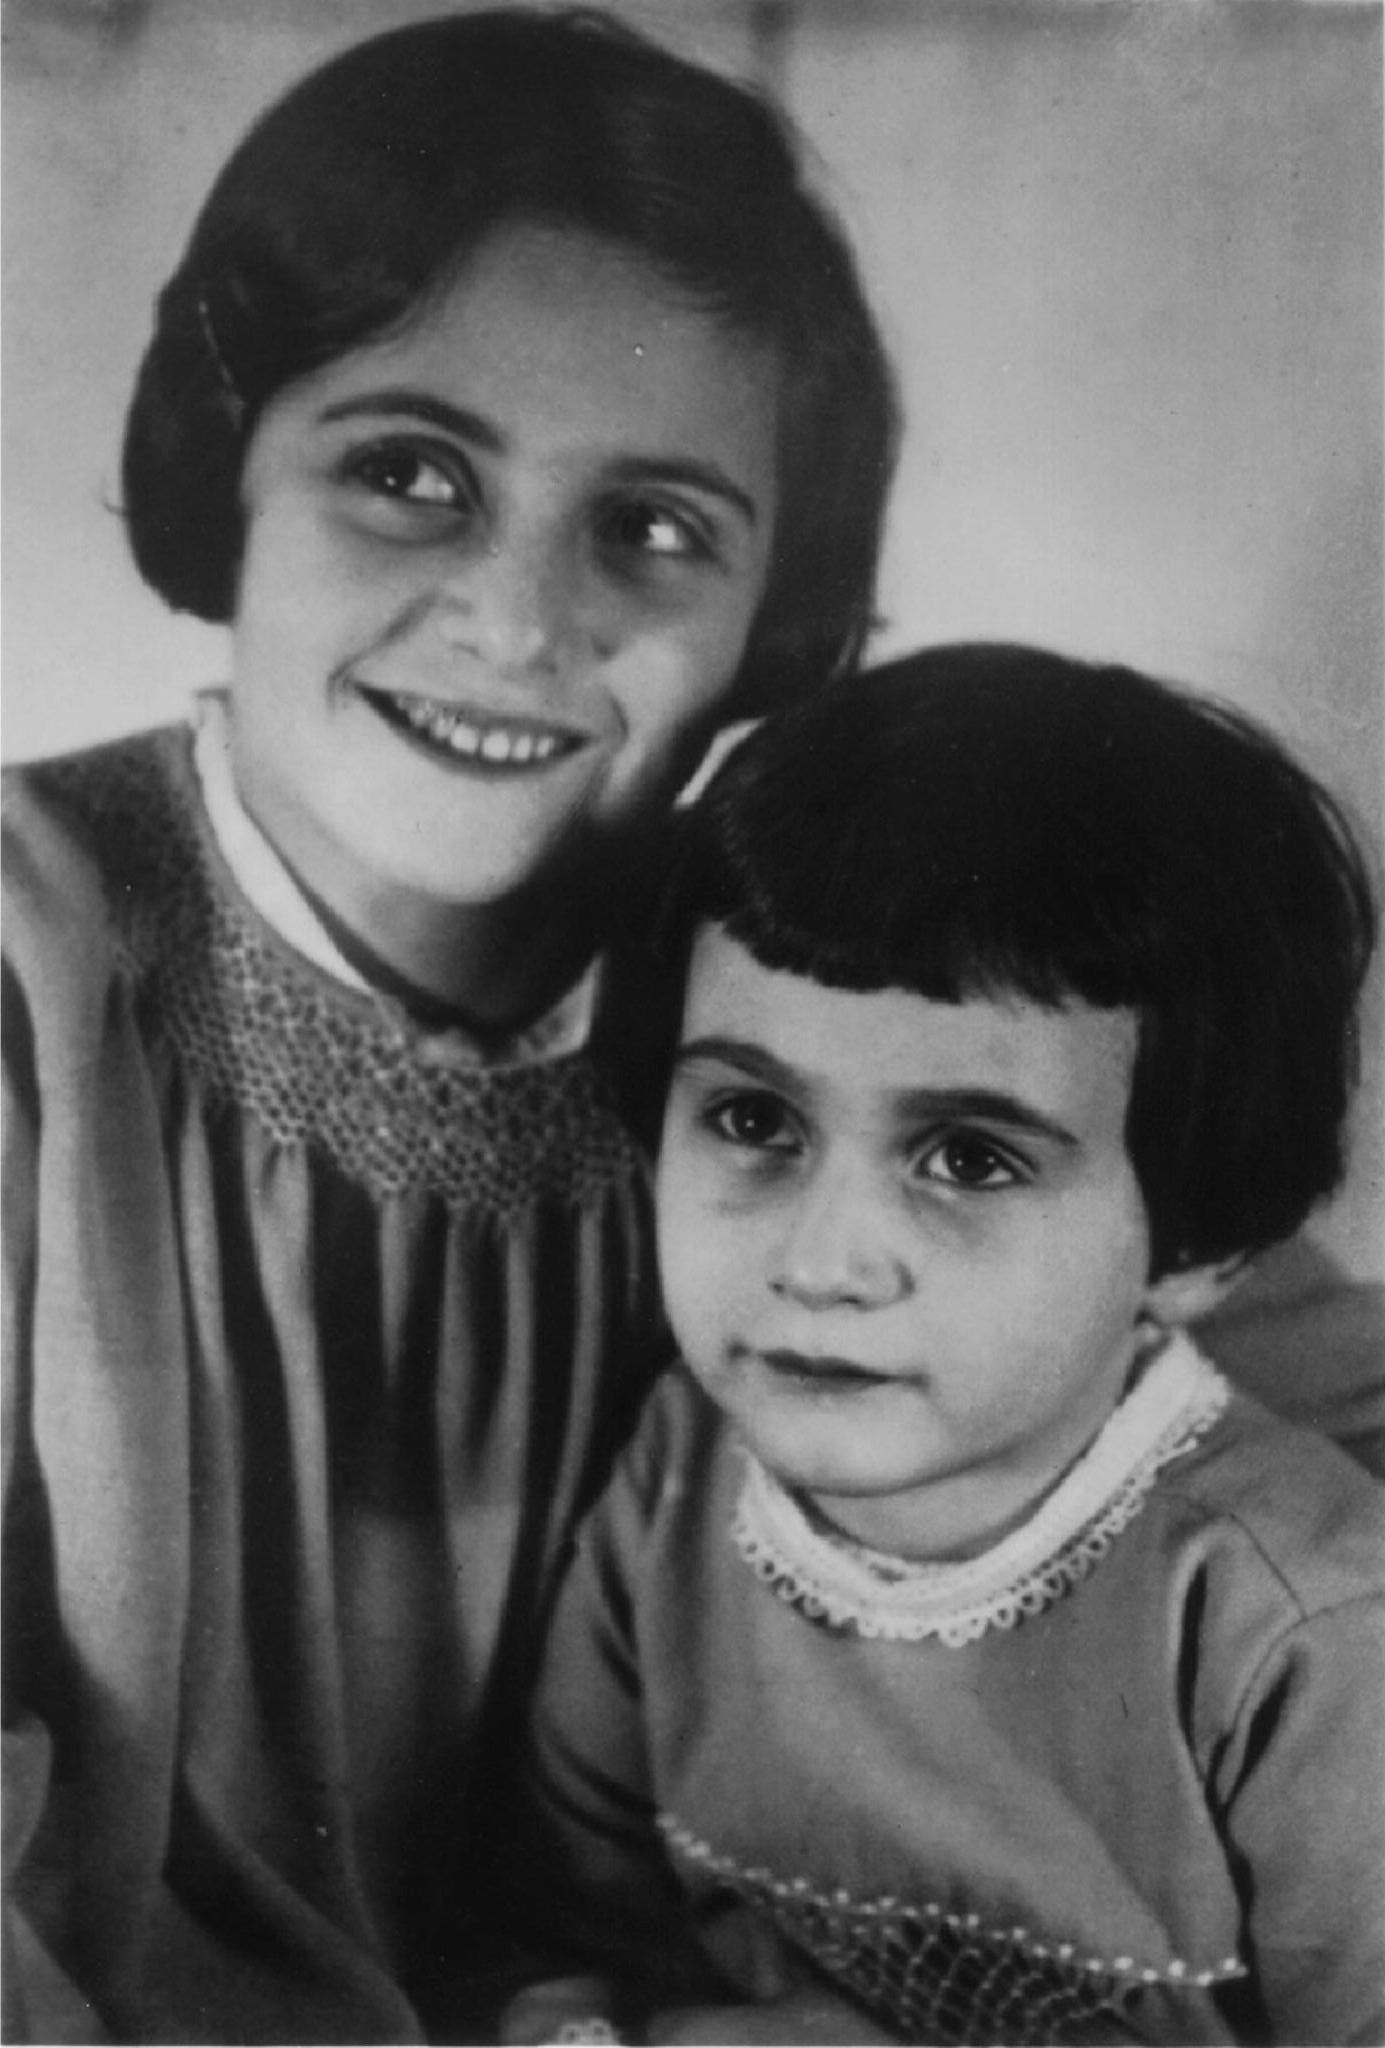 An undated family photo of Anne Frank as a young child with her older sister.